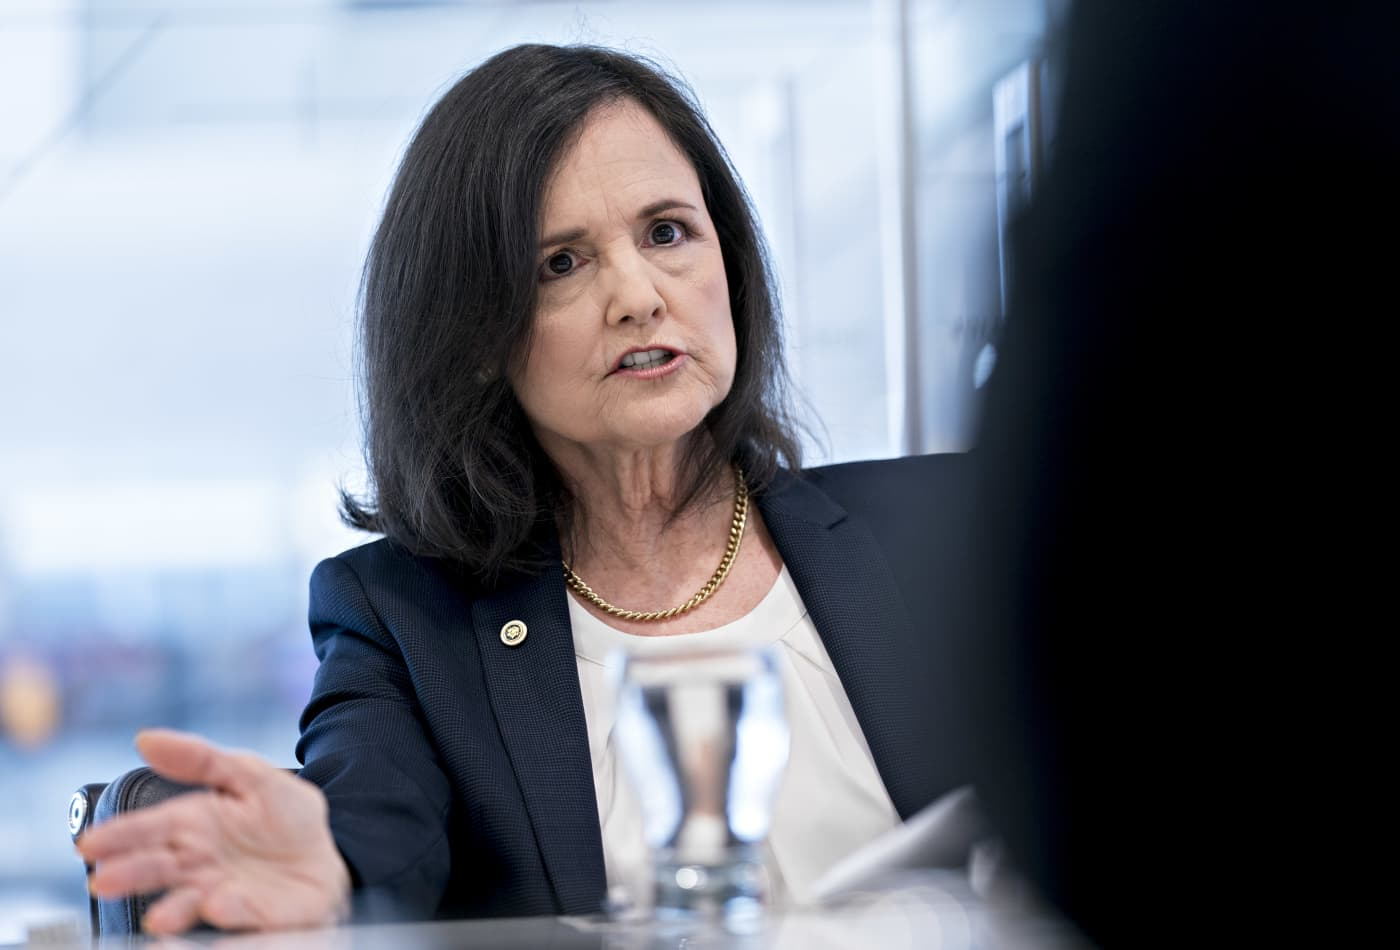 Trump's Fed pick Judy Shelton faces obstacles to confirmation